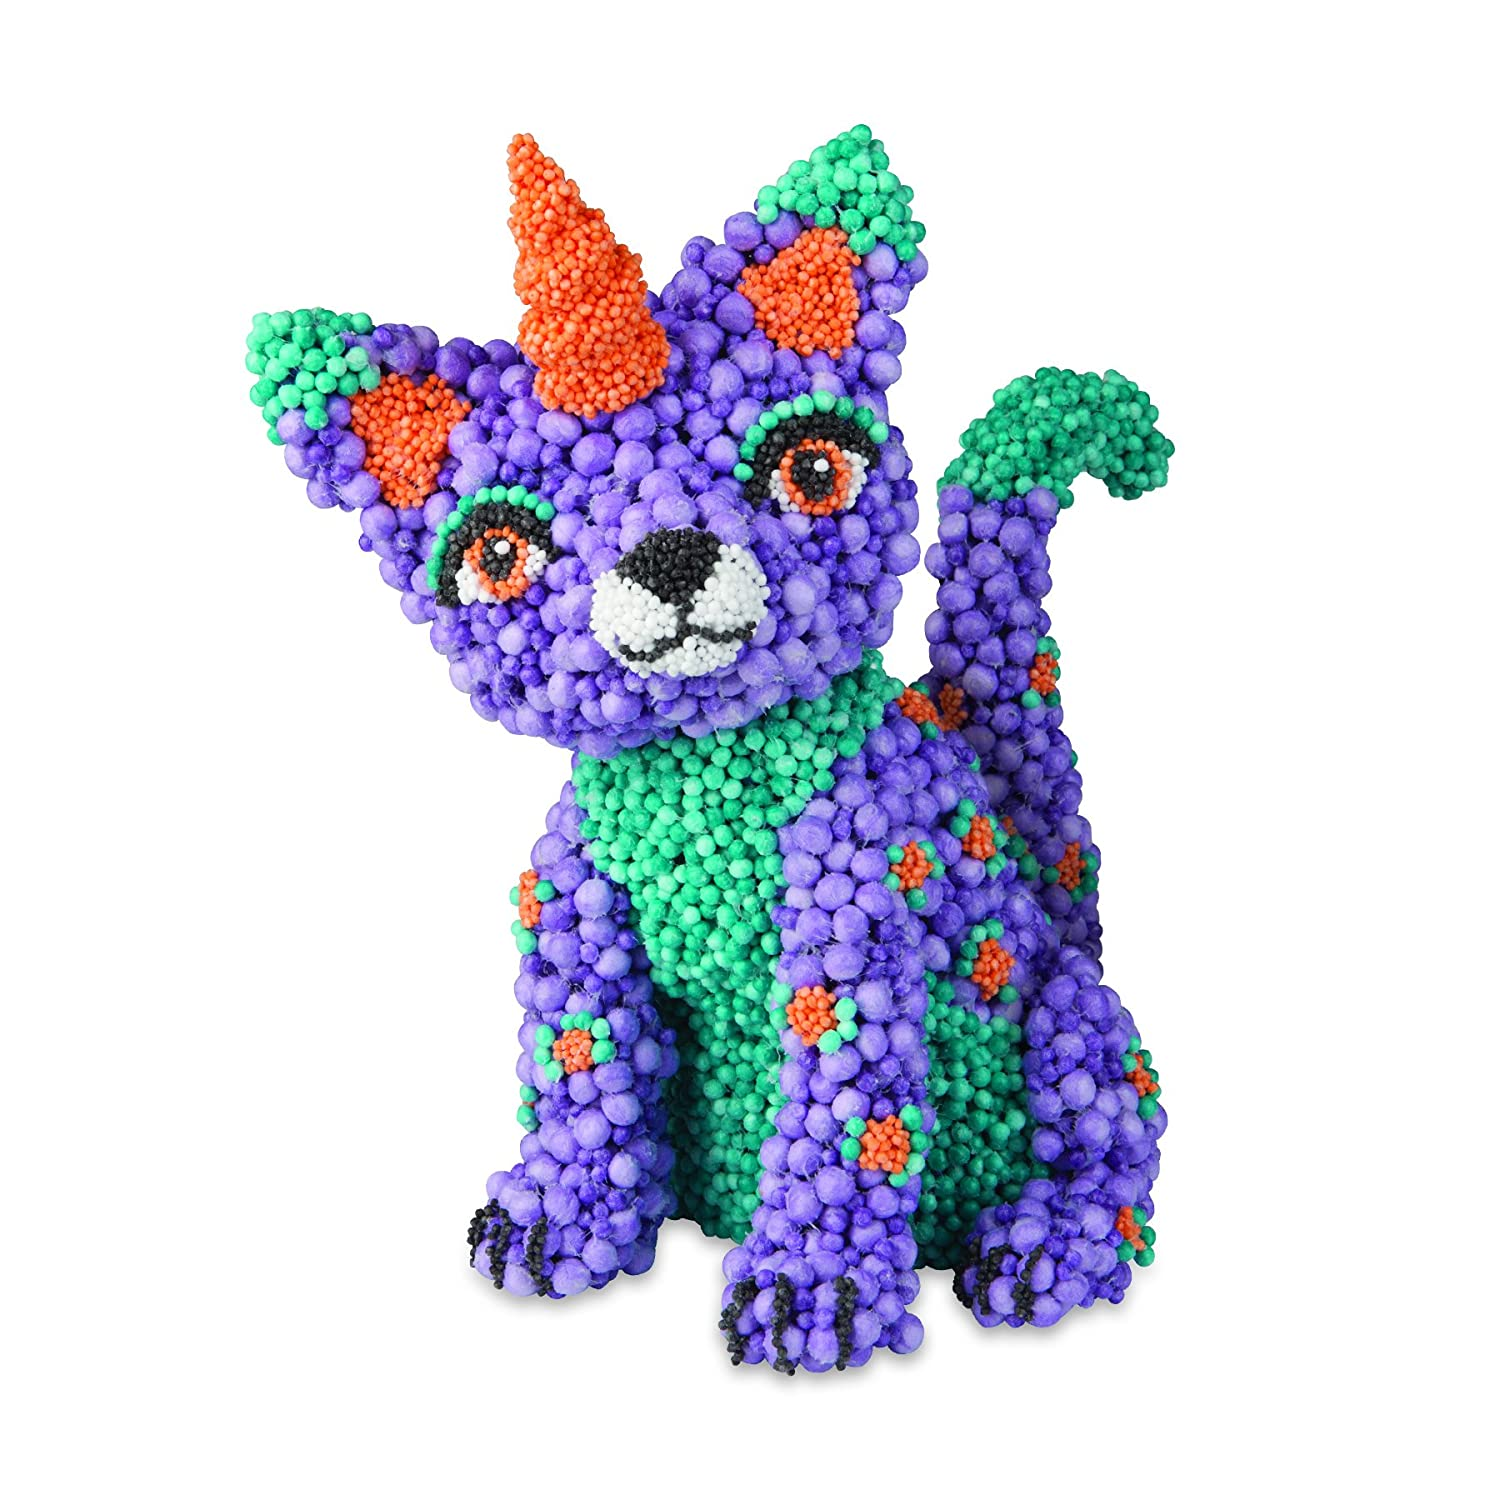 The Orb Factory Orbmolecules Caticorn Never Dries Compound 9.44 x 3.44 x 8.44 Packaging May Vary 9.44 x 3.44 x 8.44 Packaging May Vary 78959 Purple//Aqua//Orange